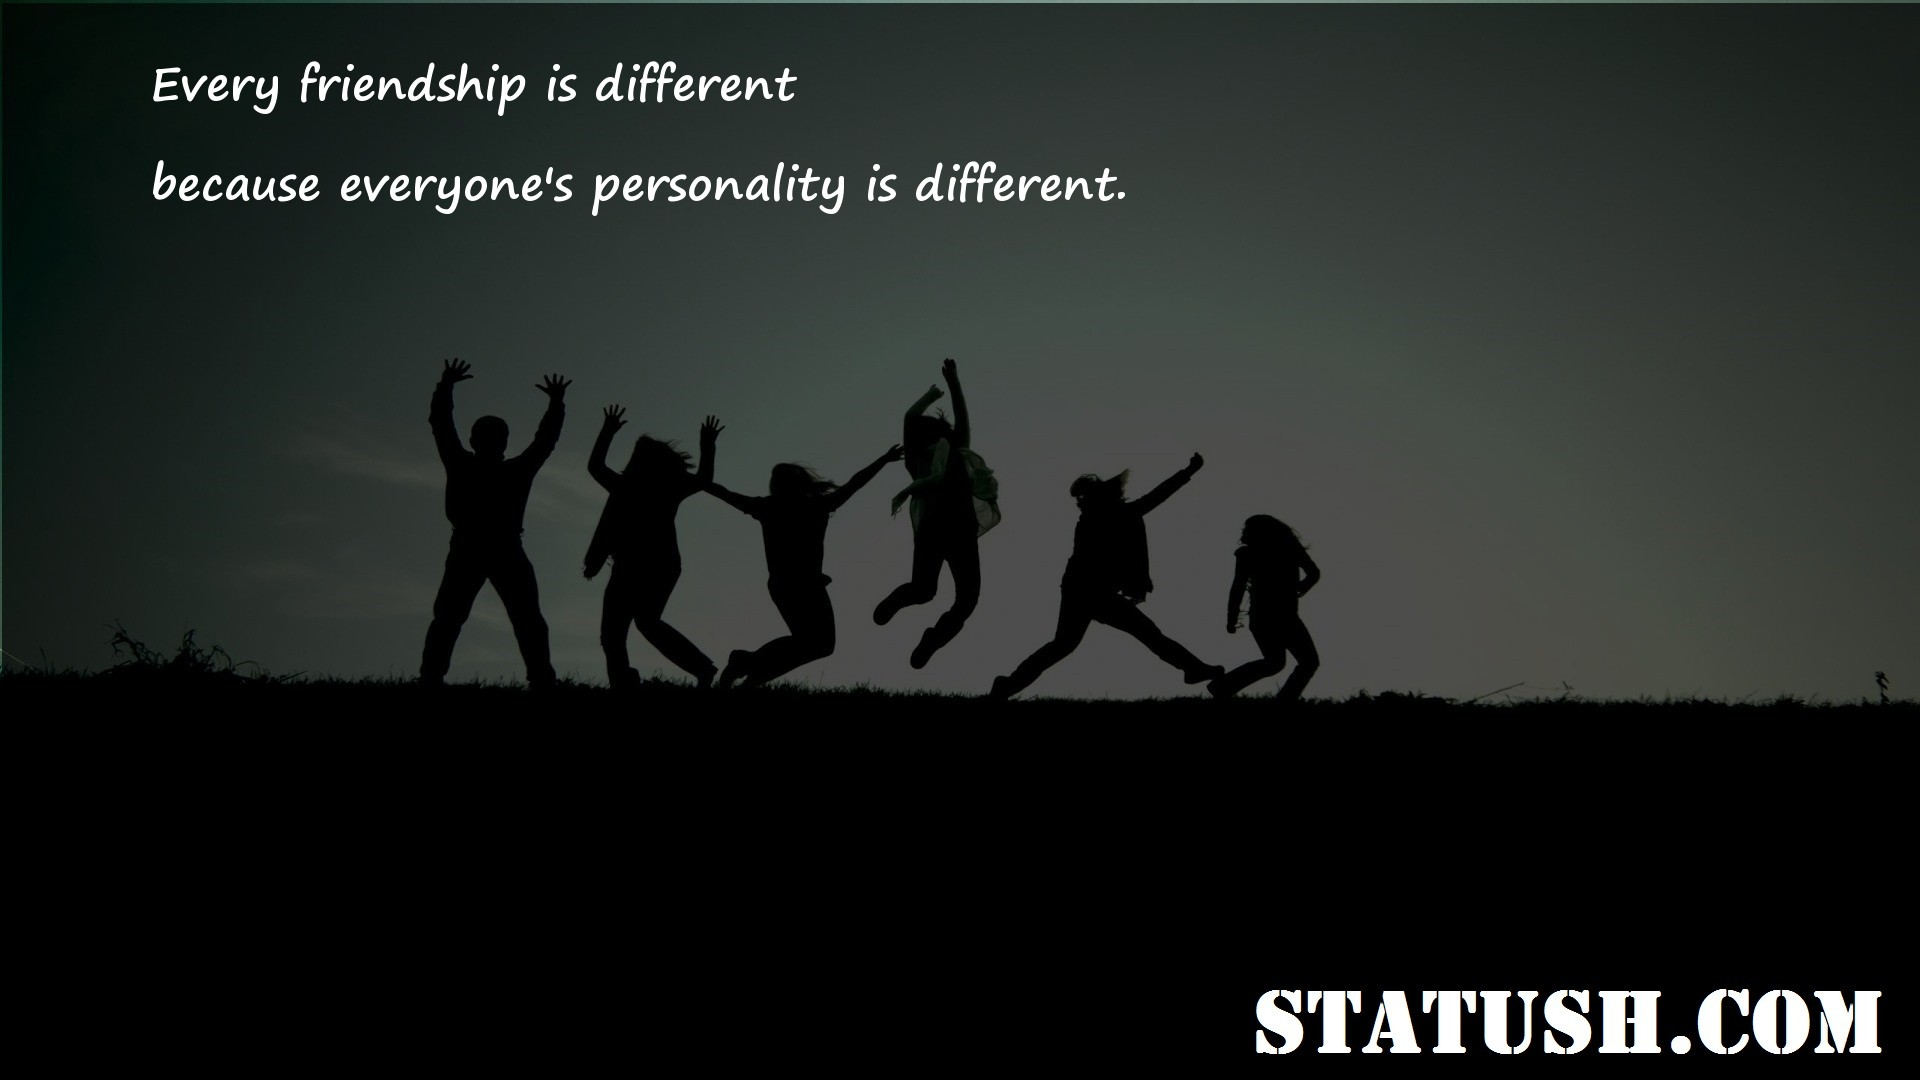 Every friendship is different